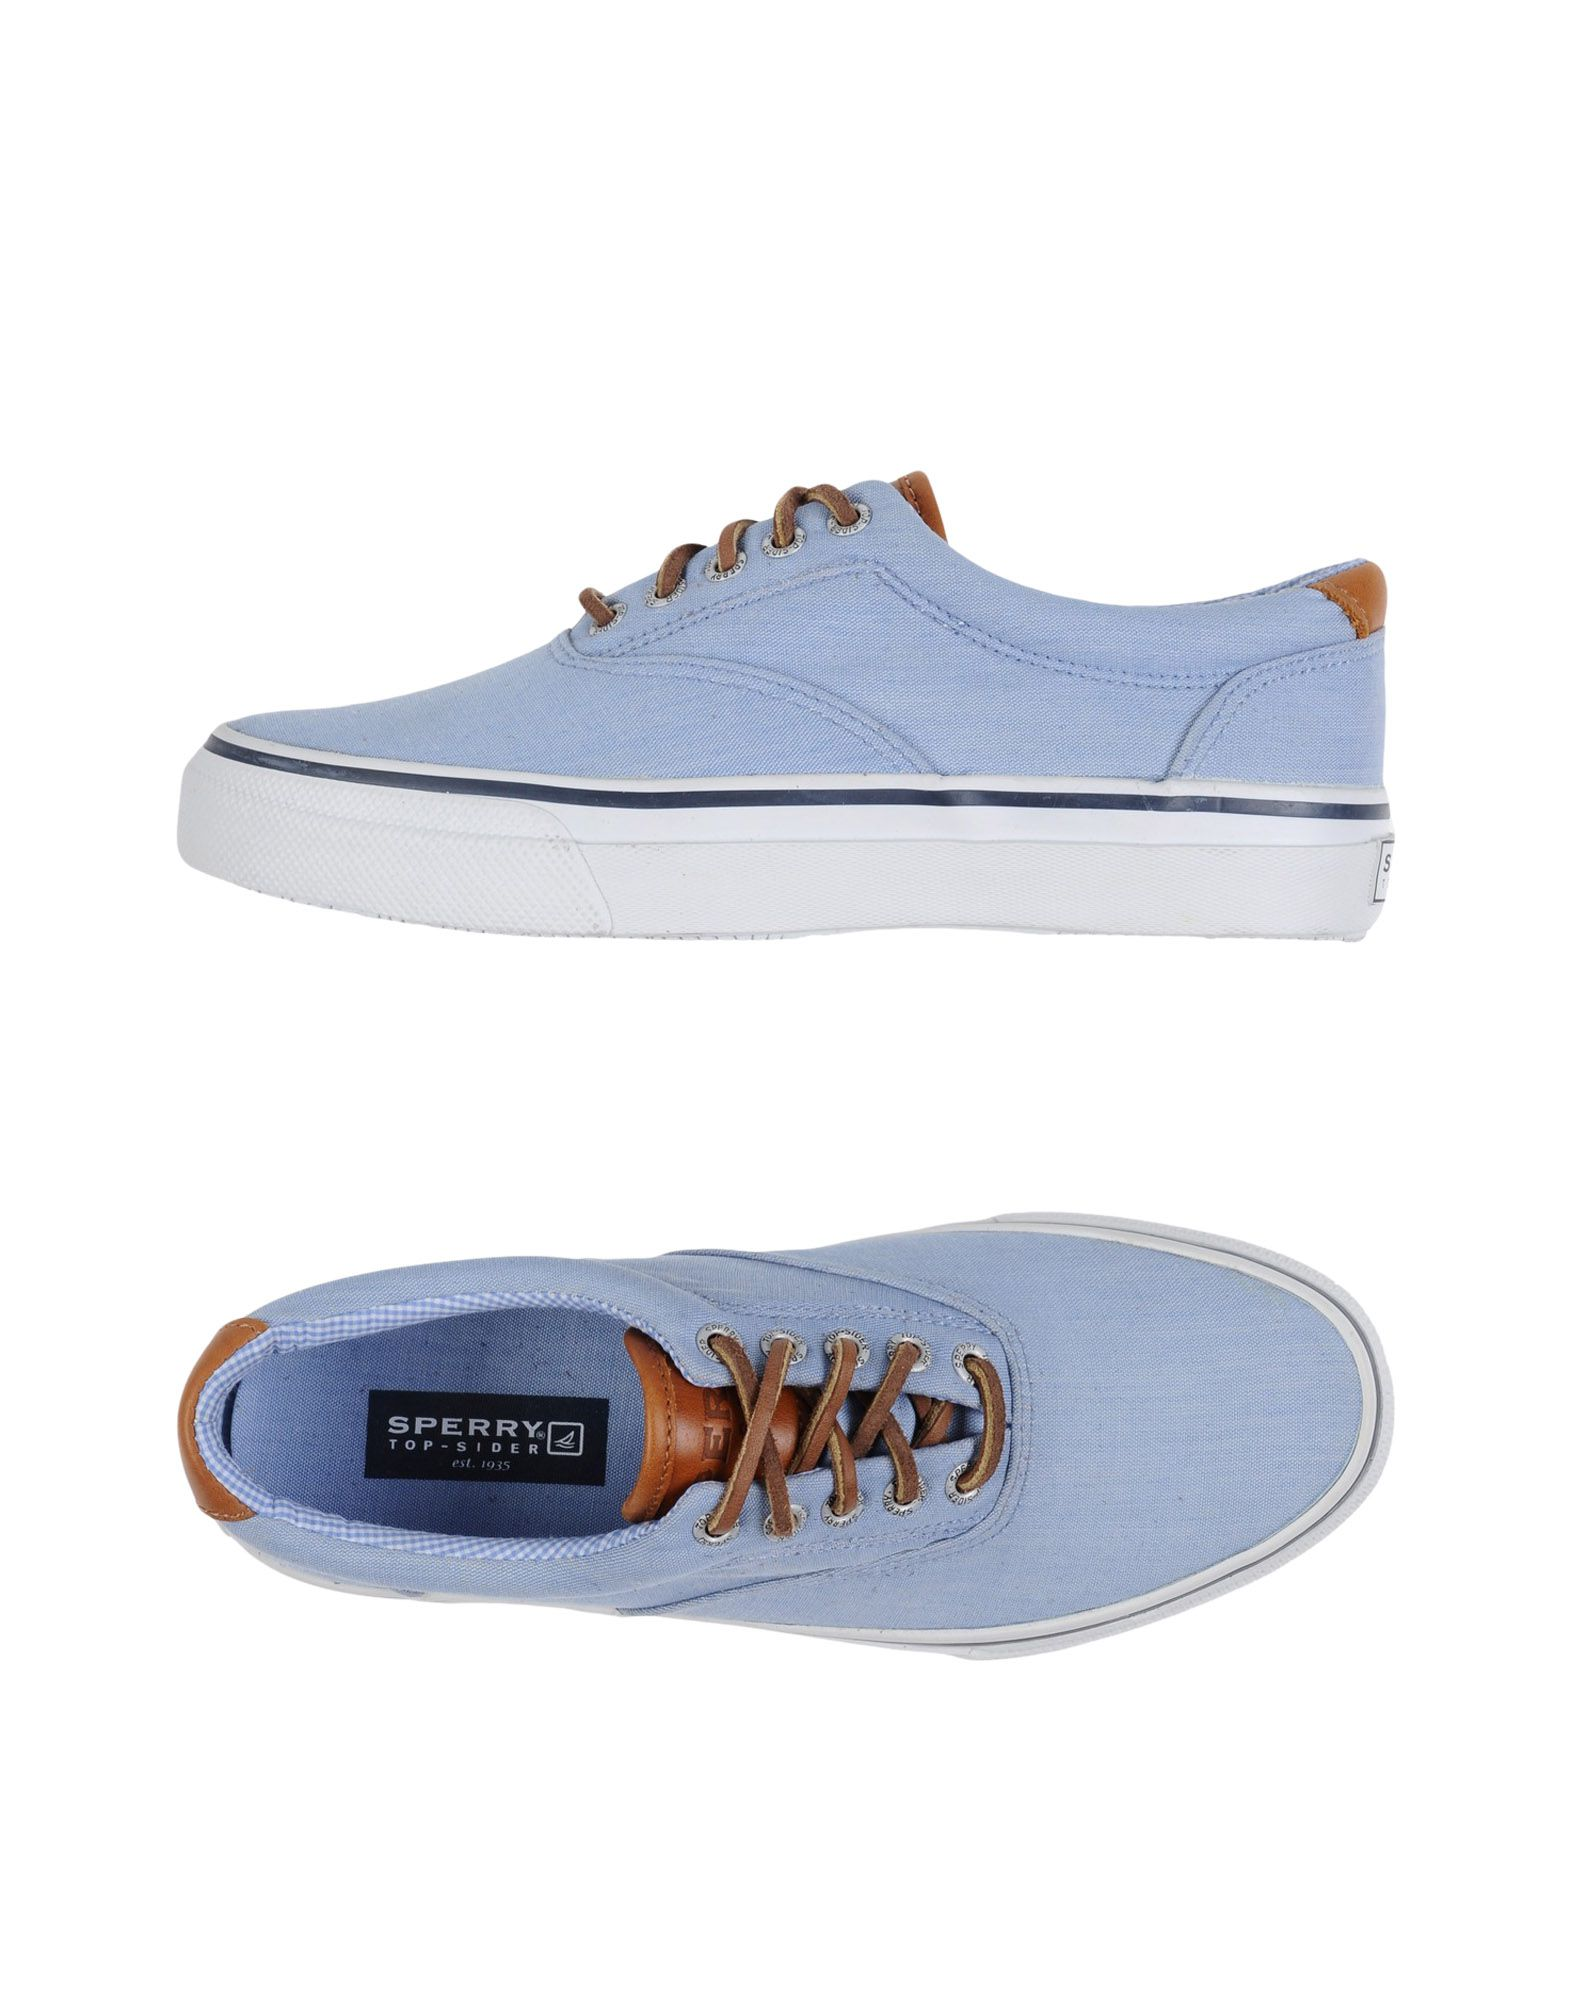 Sneakers Sperry Top-Sider Homme - Sneakers Sperry Top-Sider sur